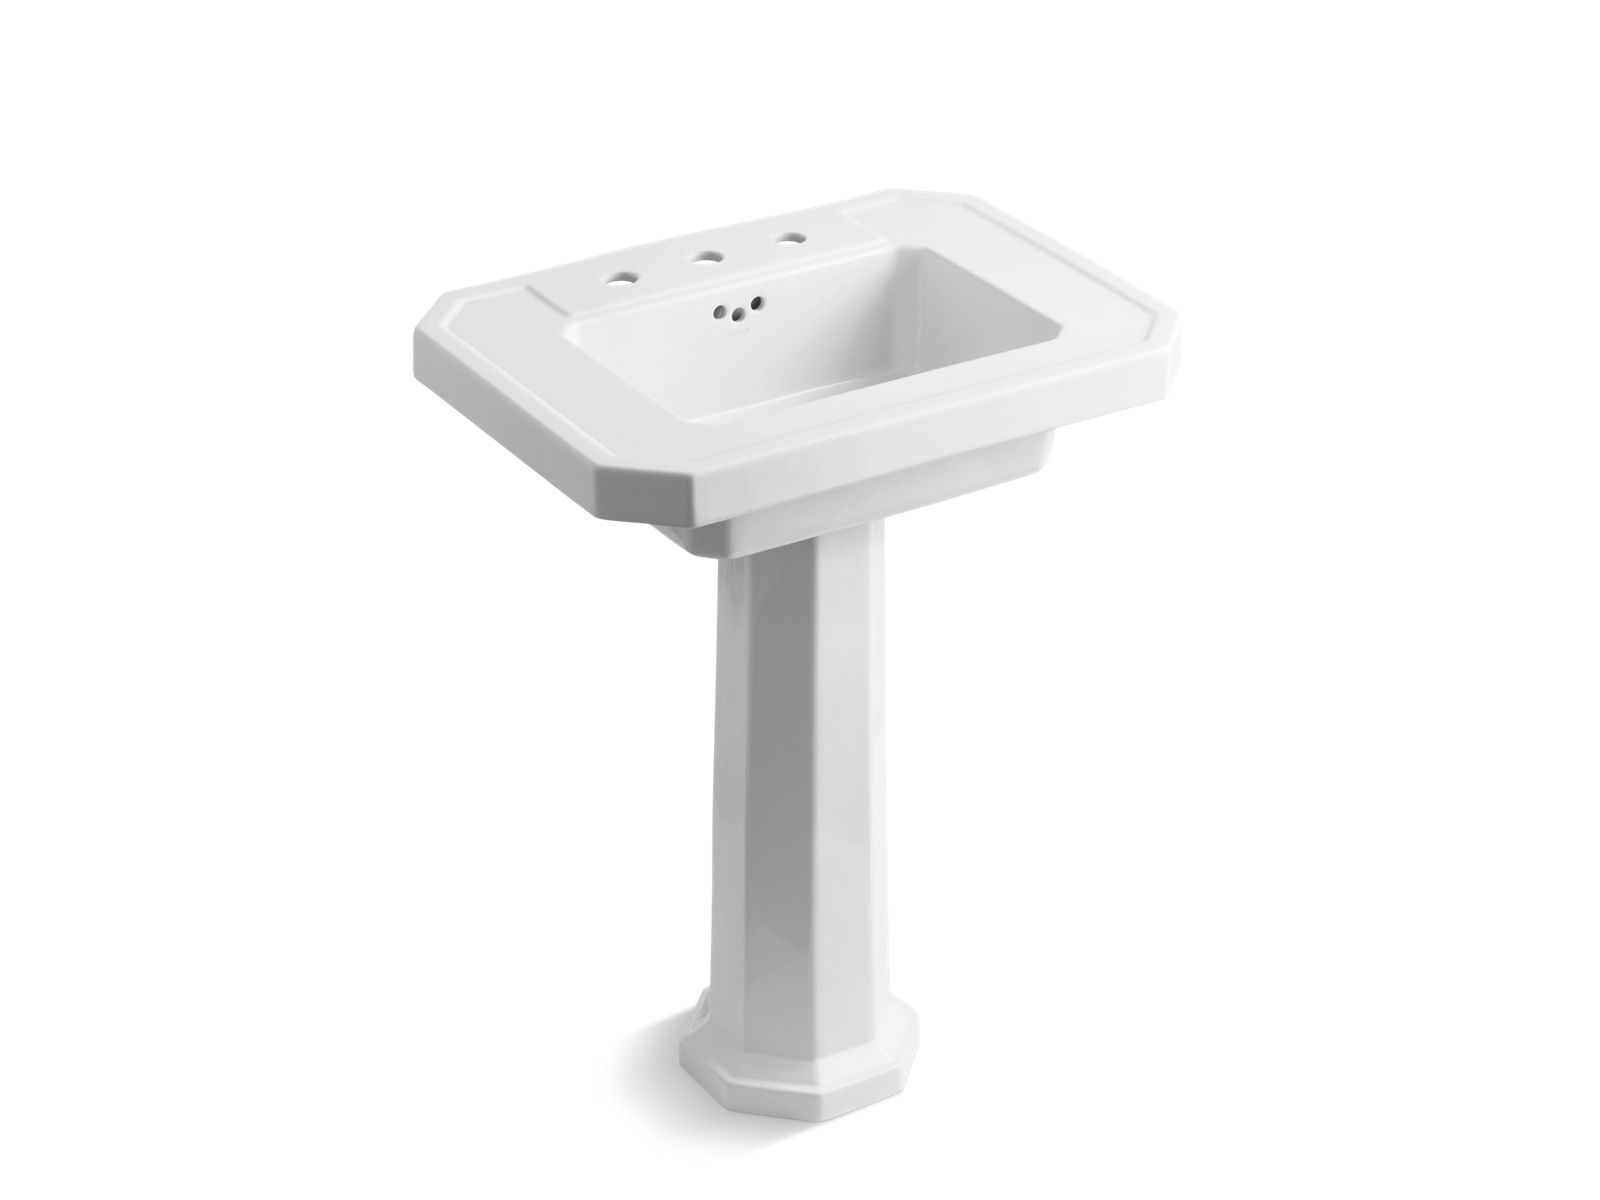 Good Kathryn Fireclay Basin And Pedestal With 8 Inch Centers | K 2322 8 | KOHLER